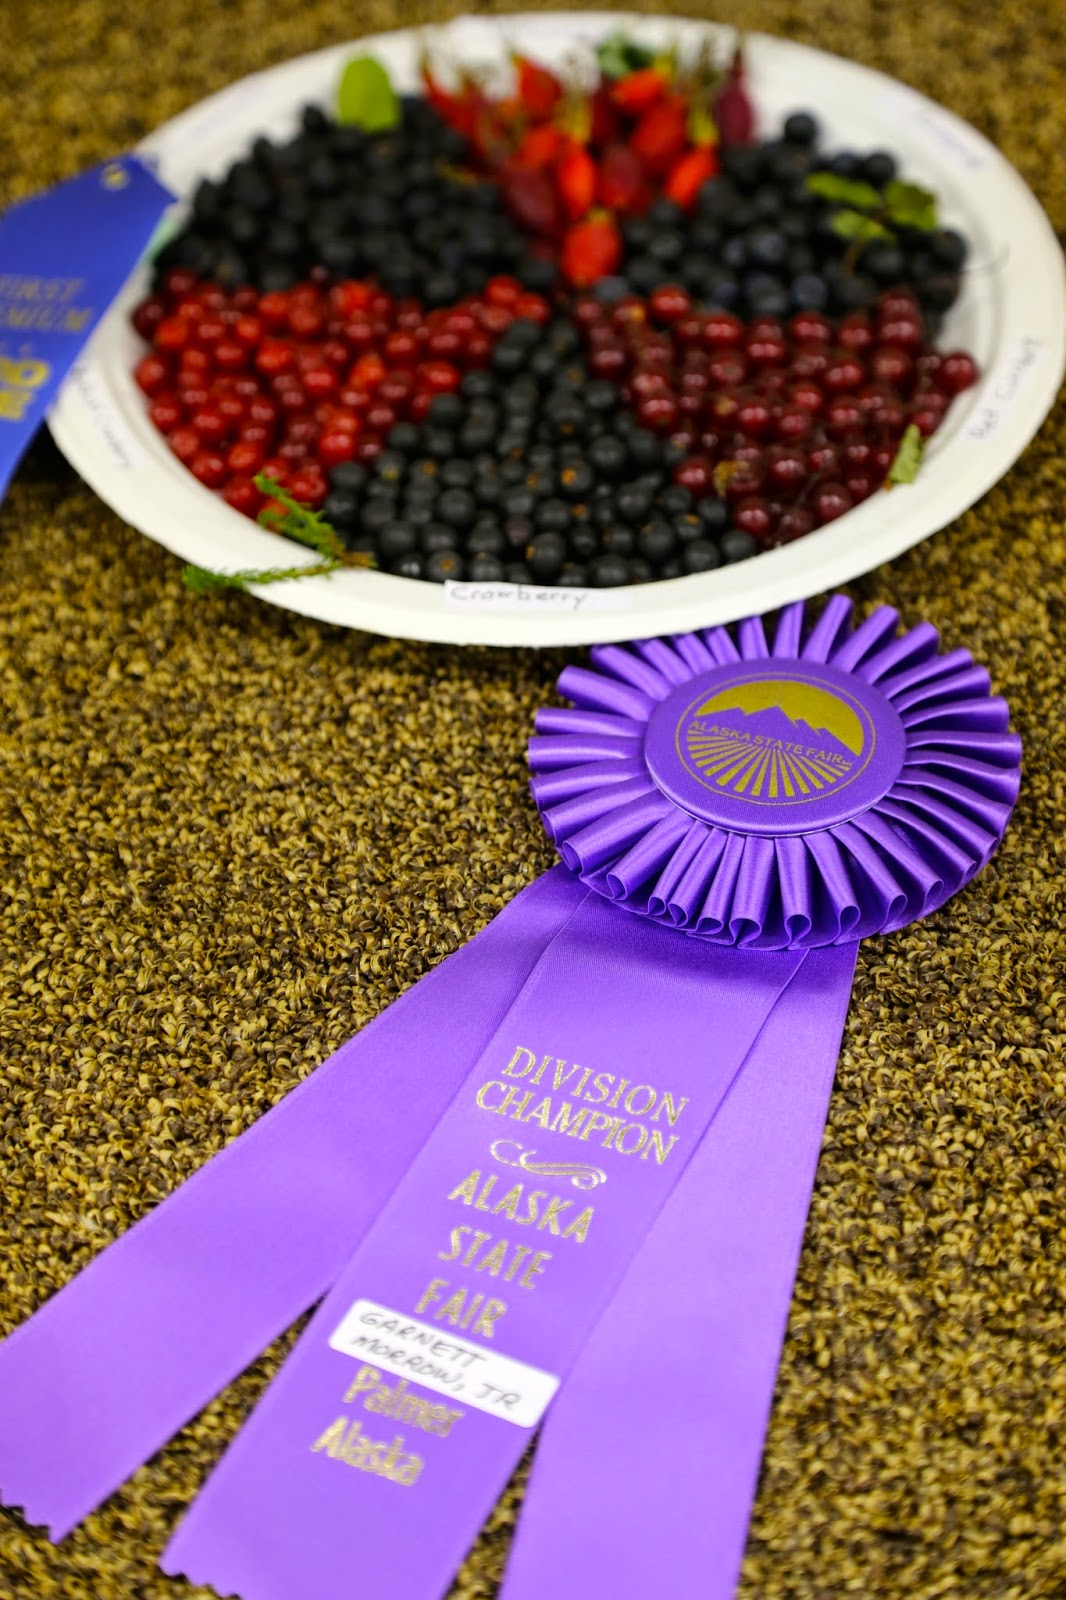 Alaskan berries, State Fair, Alaska